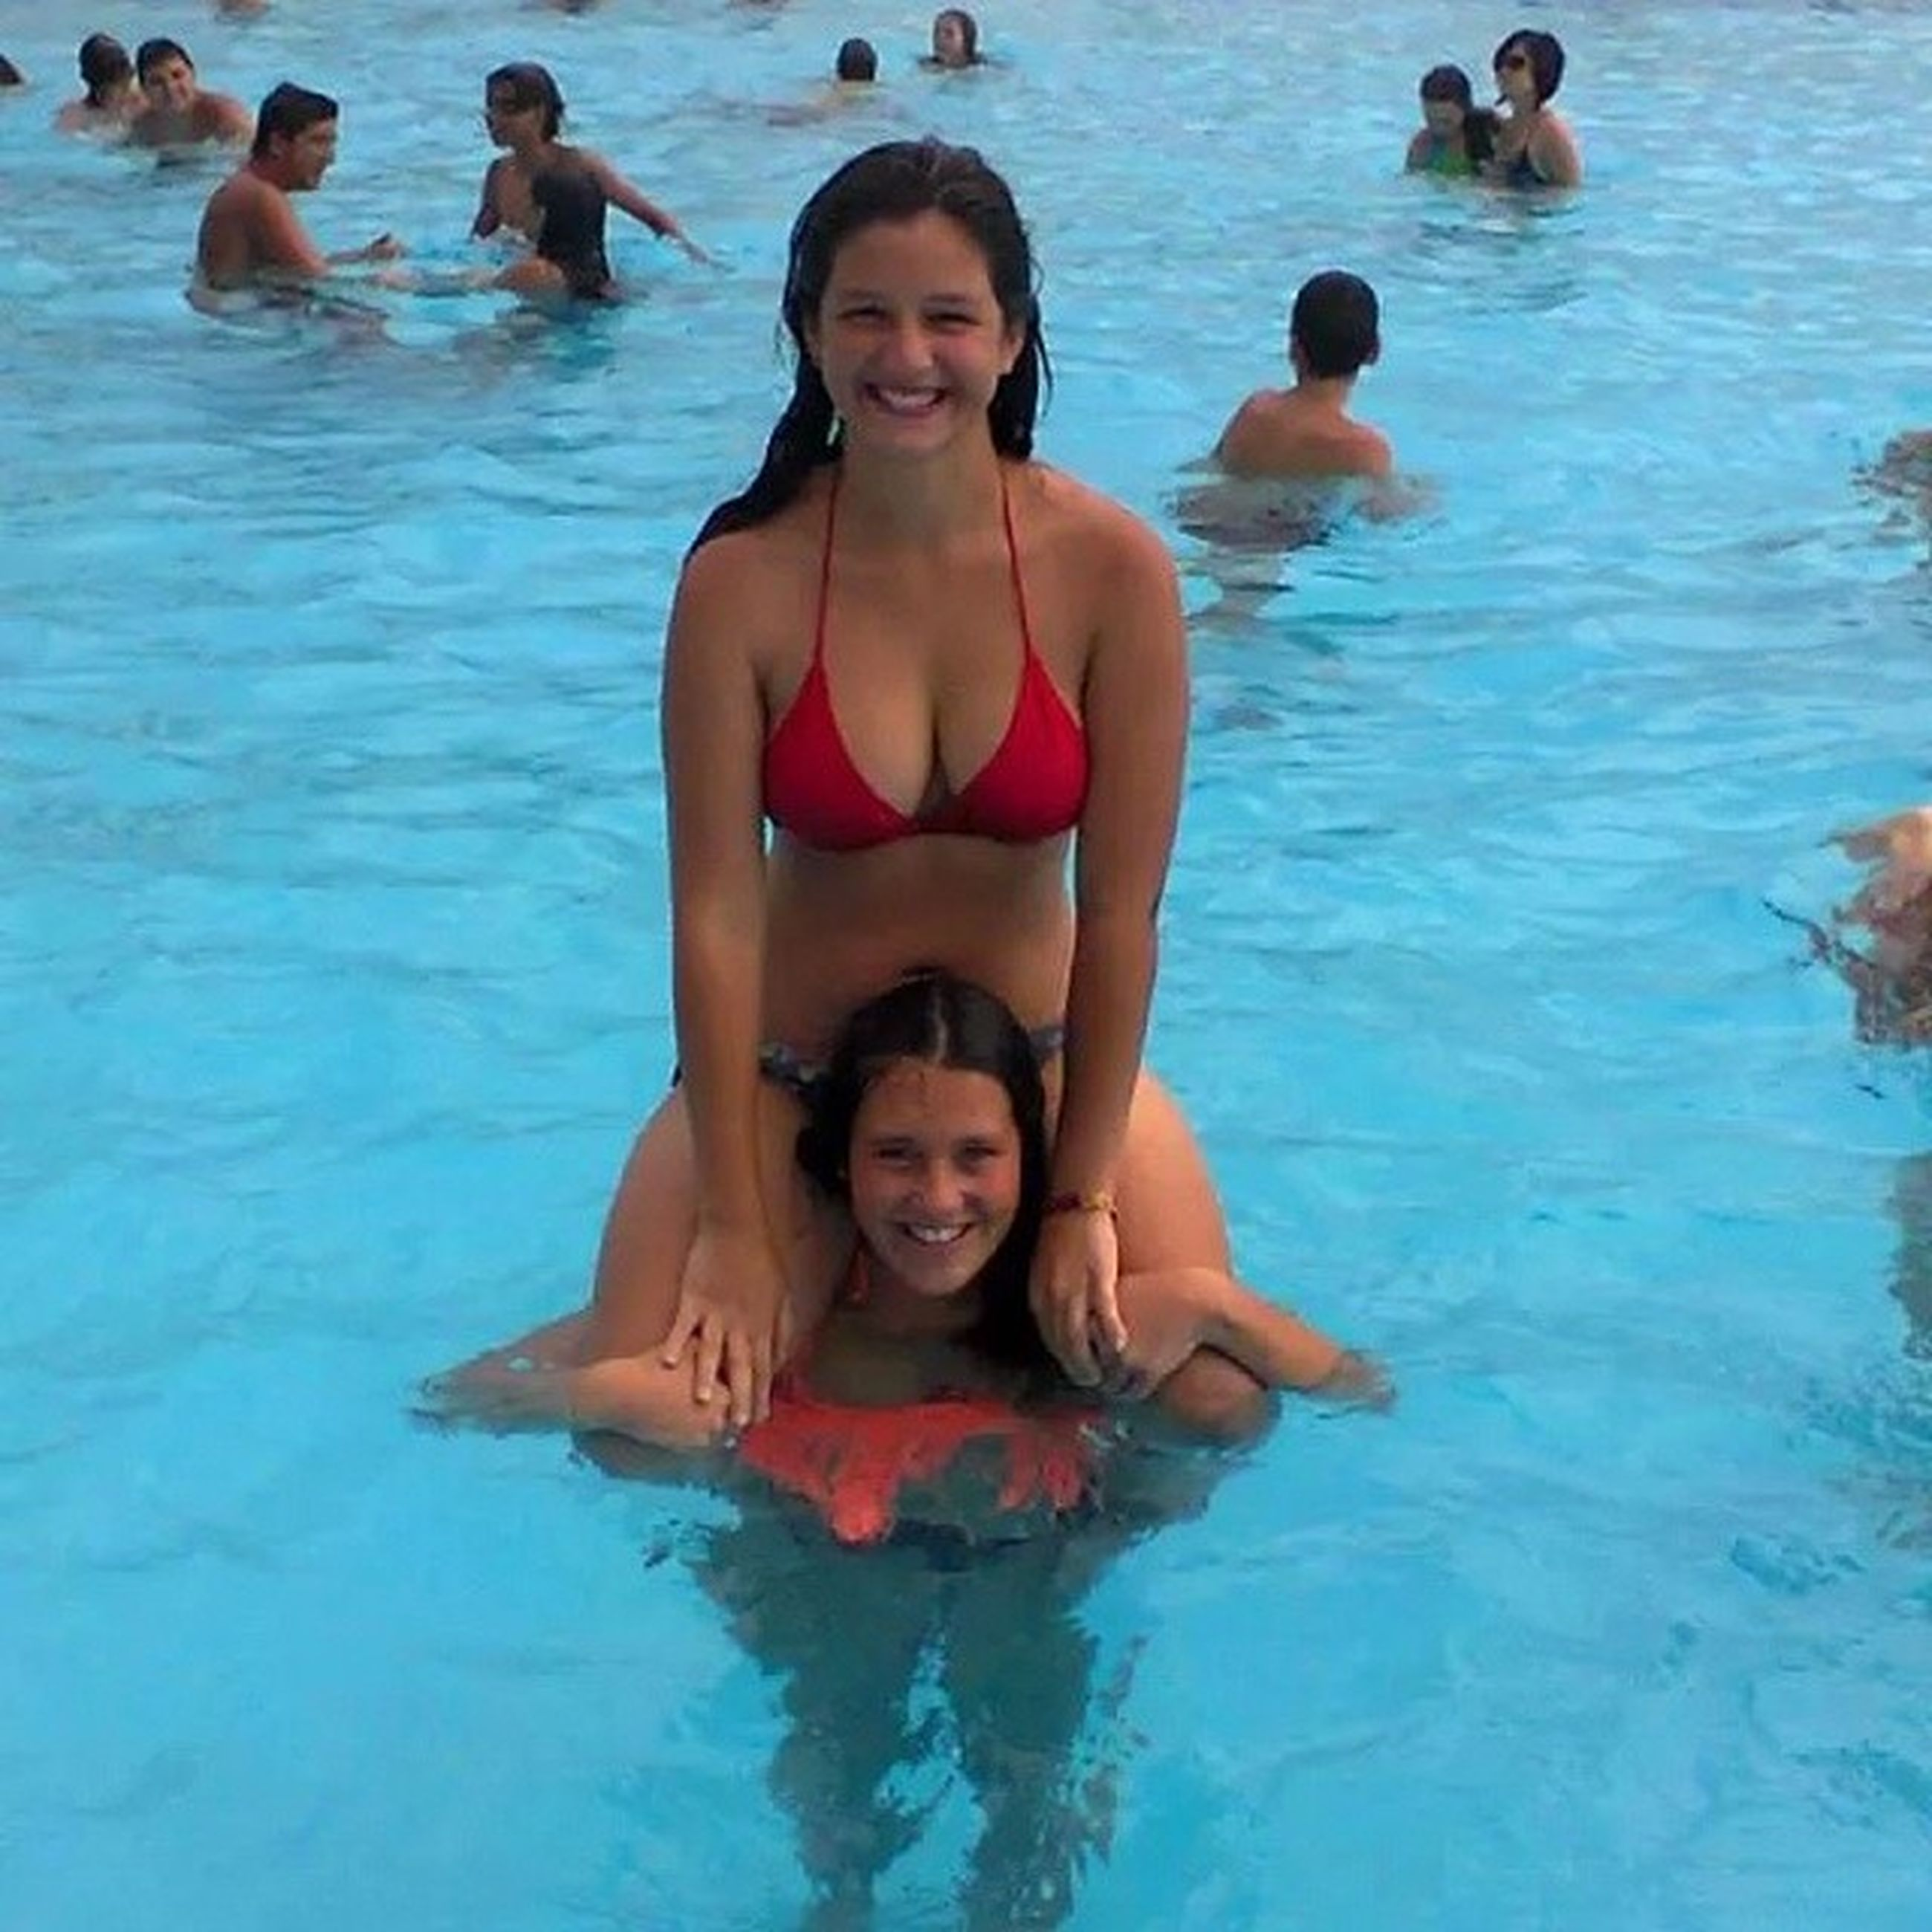 water, person, smiling, leisure activity, looking at camera, togetherness, portrait, happiness, lifestyles, childhood, front view, enjoyment, fun, vacations, swimming, bonding, girls, elementary age, full length